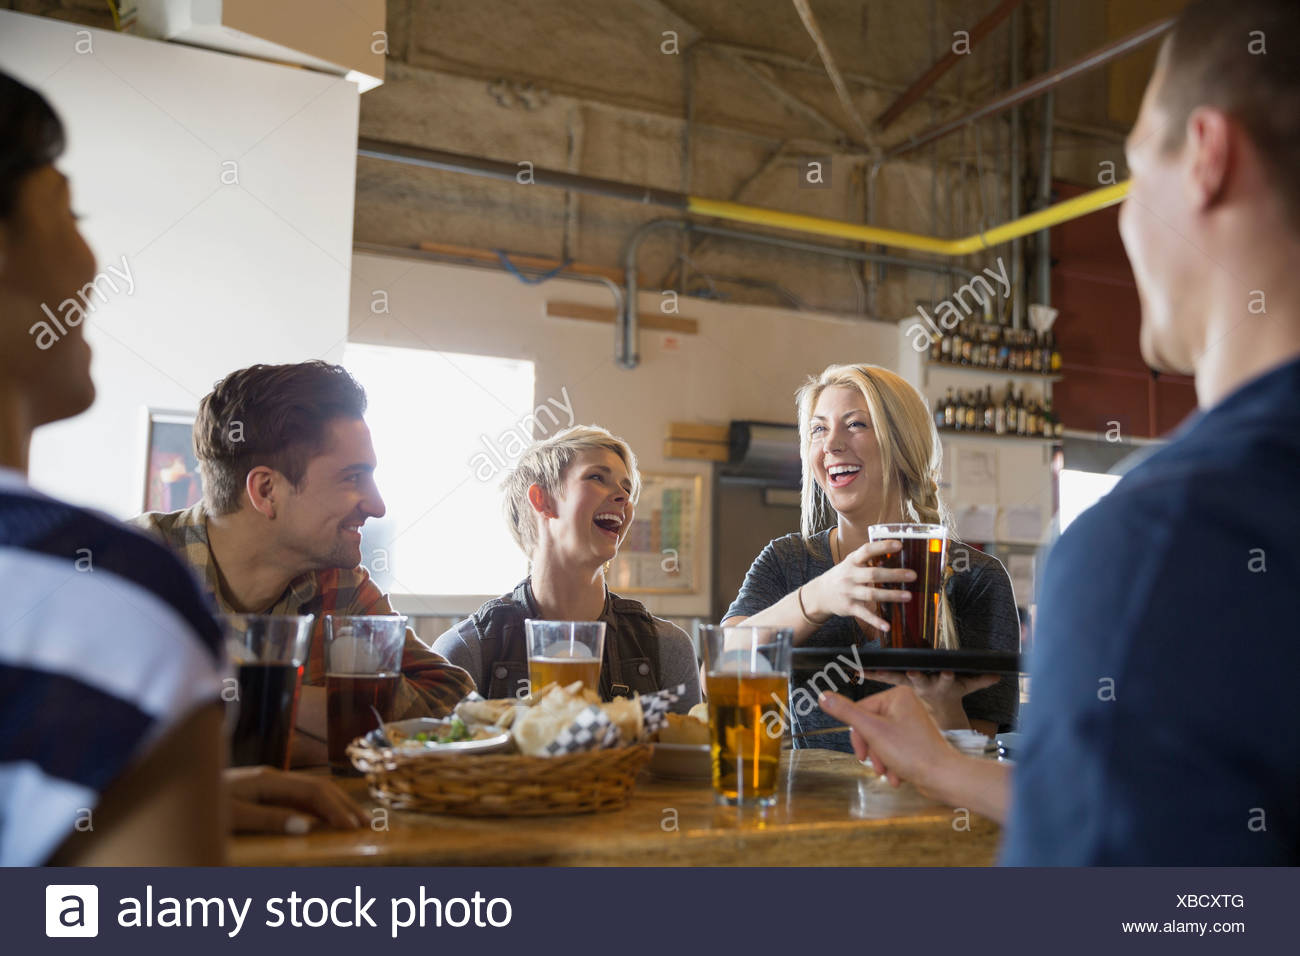 Waitress serving friends beer at brewery - Stock Image